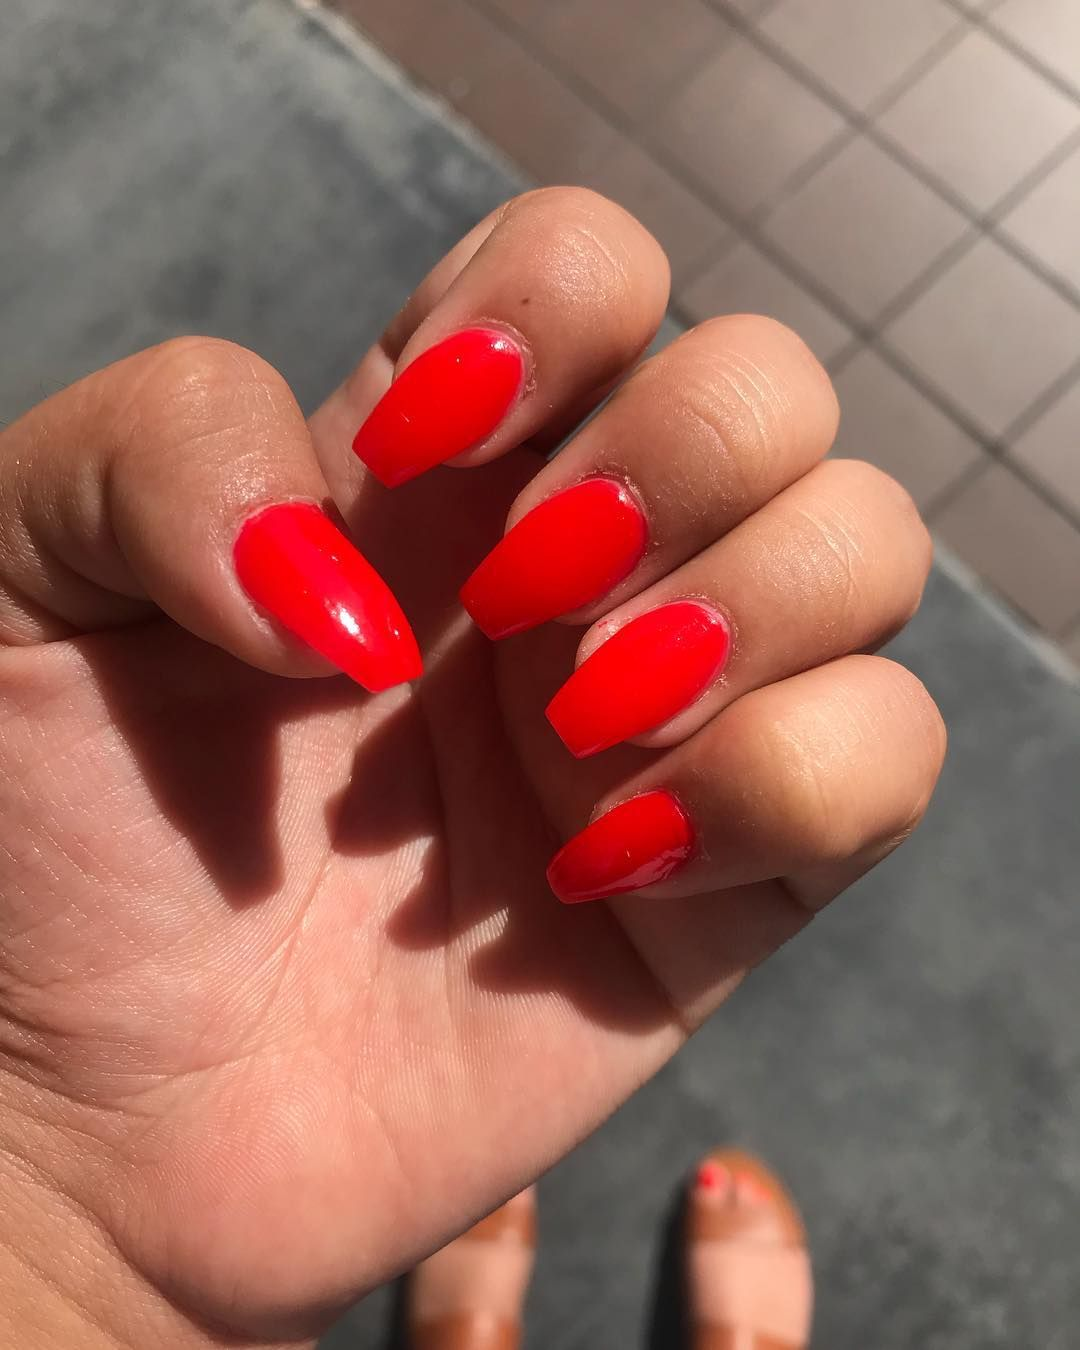 Orange Red Summanails Summerlook Summer Summernails Orange Red Socute Shiny Nails Nailsdid Cherry Cher Red Acrylic Nails Red Nails Bright Red Nails